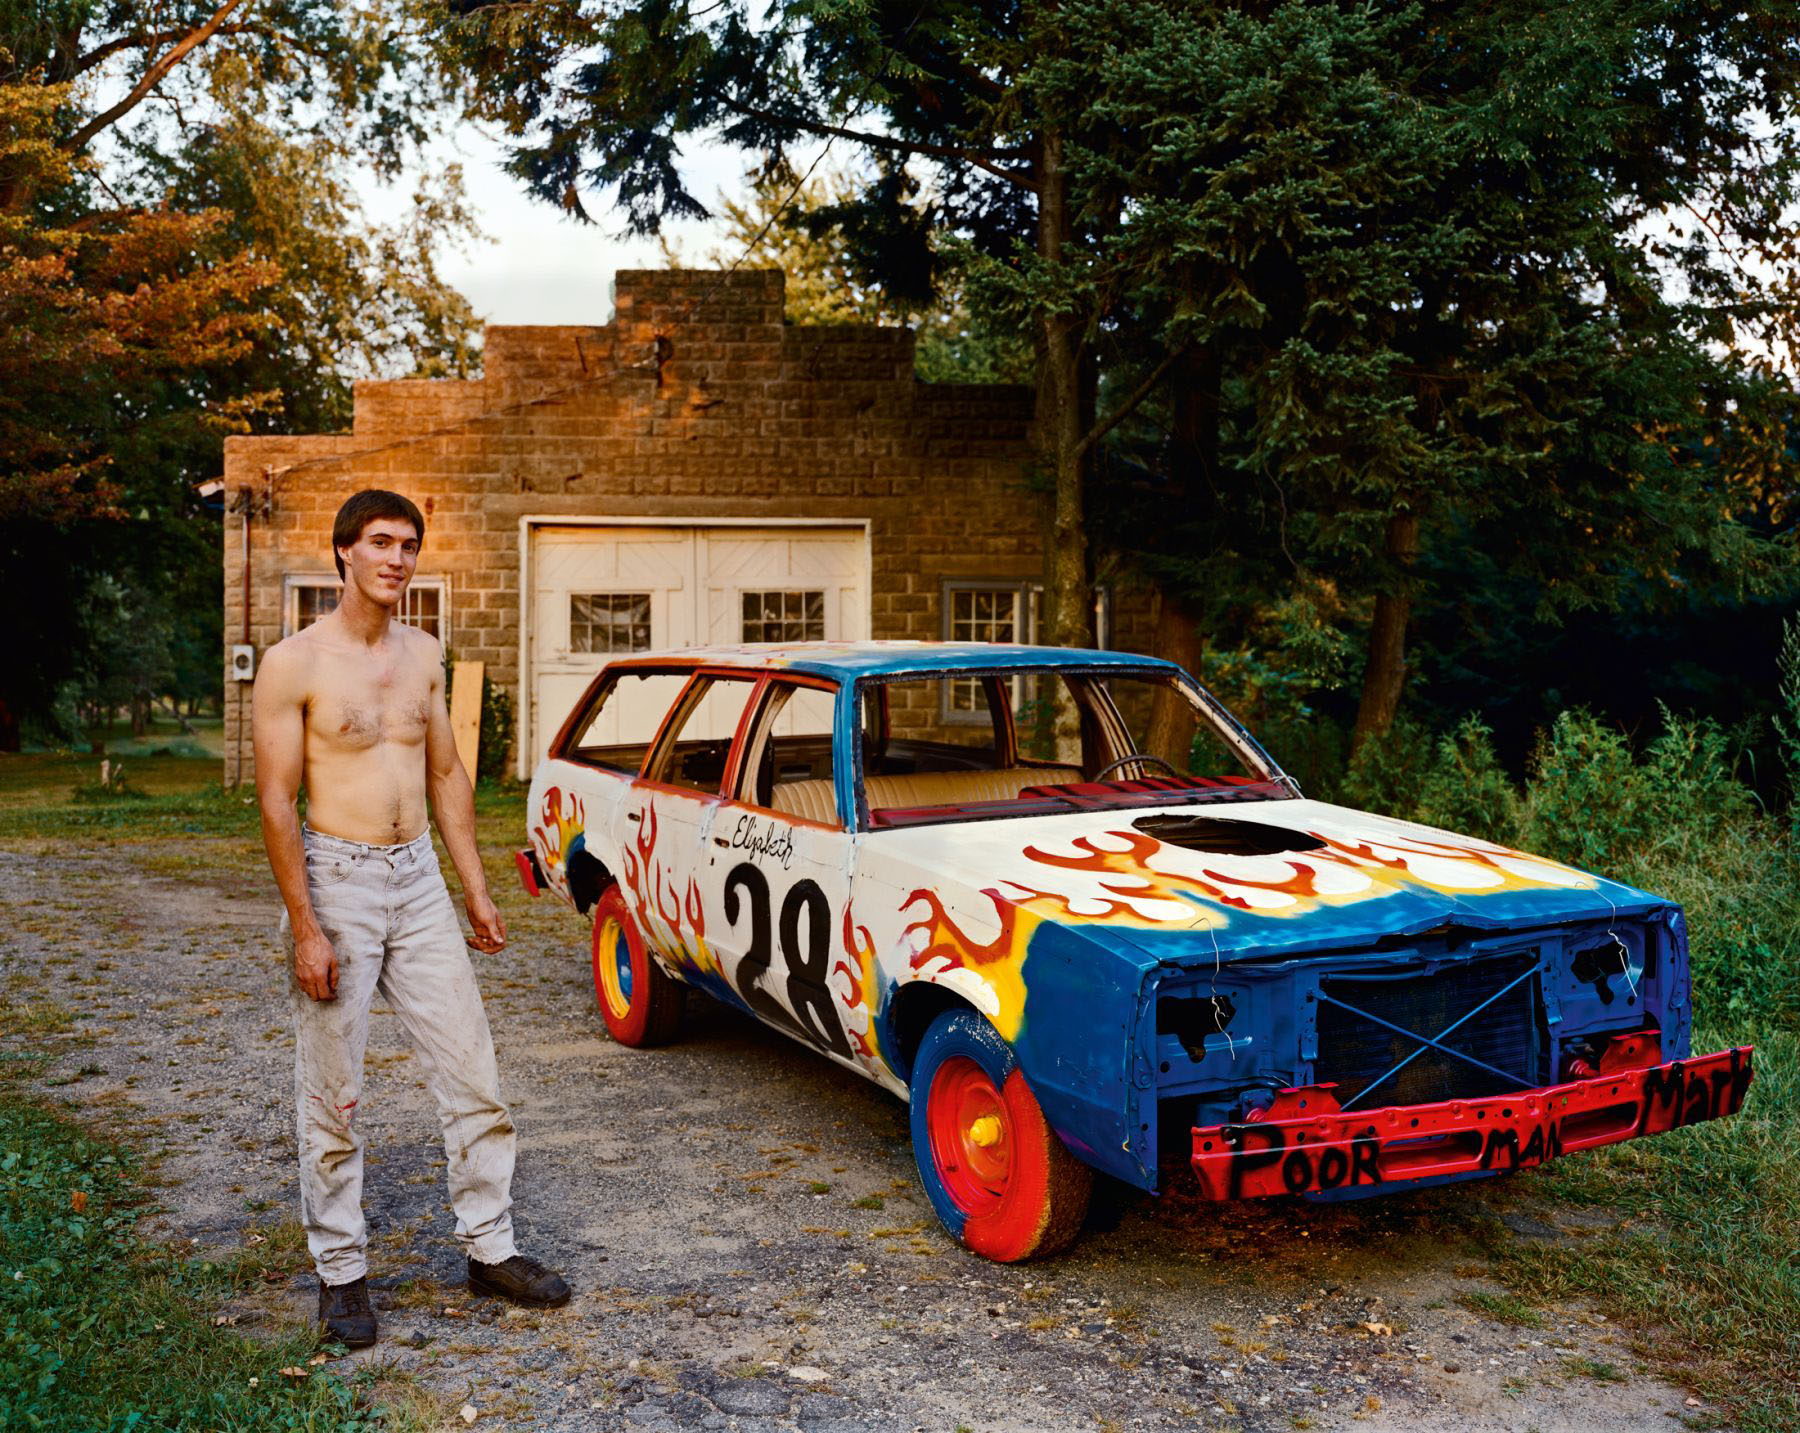 A Man Waiting for a Tow Truck to Take His Car to a Demolition Derby at the County Fair, South Hadley, Massachusetts, September 1998<br>The Tow Truck Never Came and He Was Unable to Race That Year